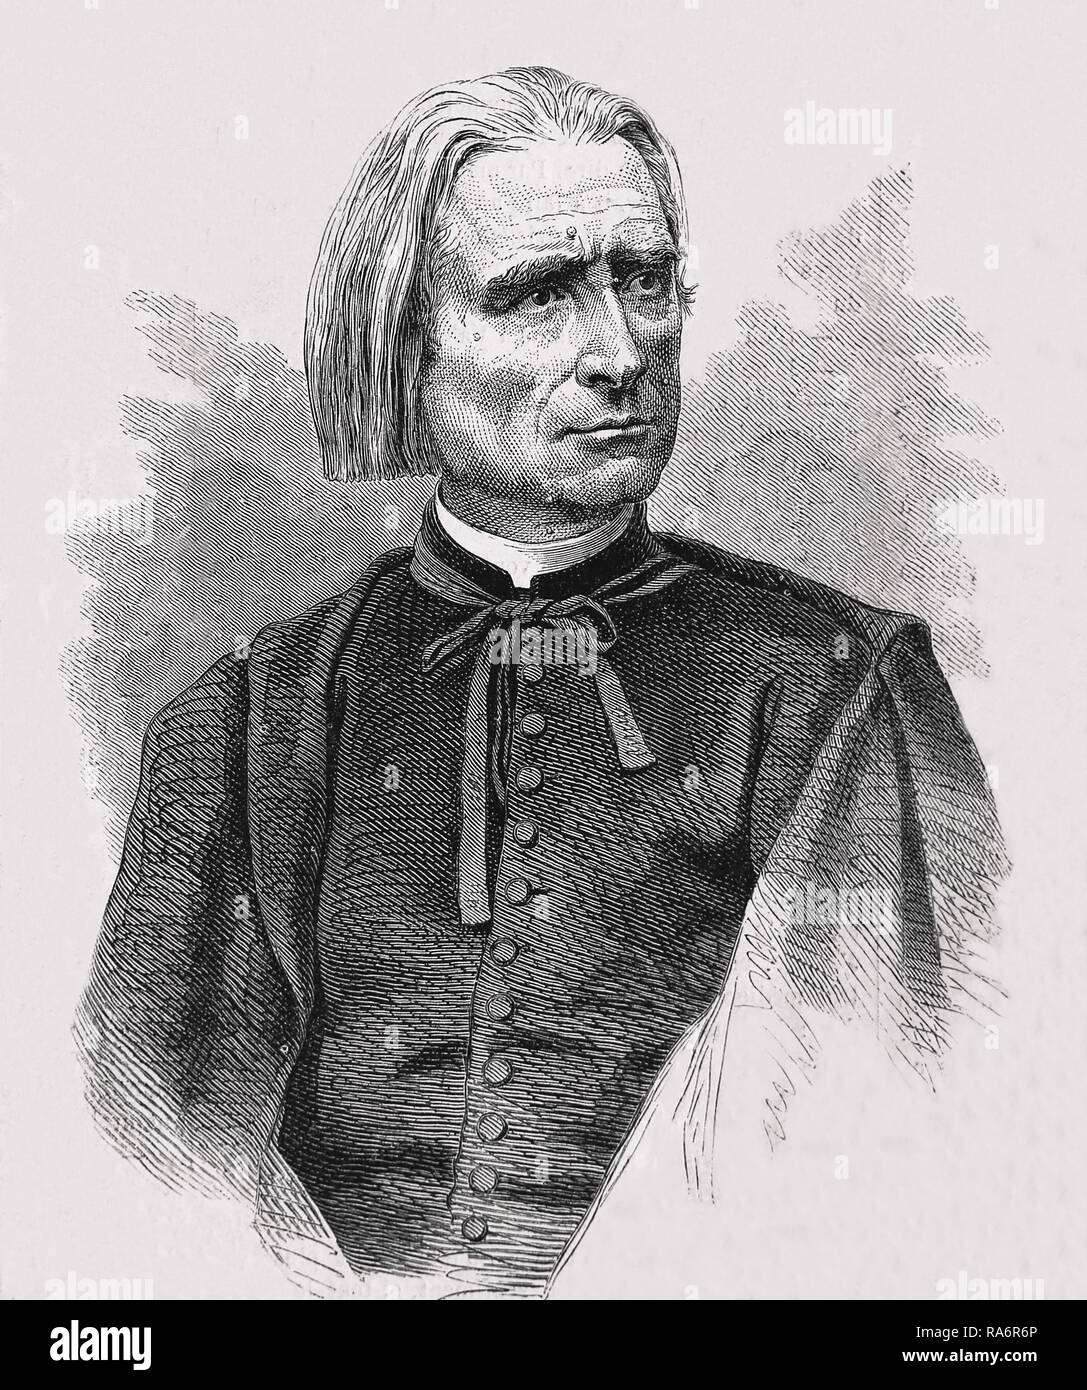 Franz Liszt (1811-1886) Musician, piano man. Prolific and famous Hungarian composer and author. Engraving 19th. century. Stock Photo